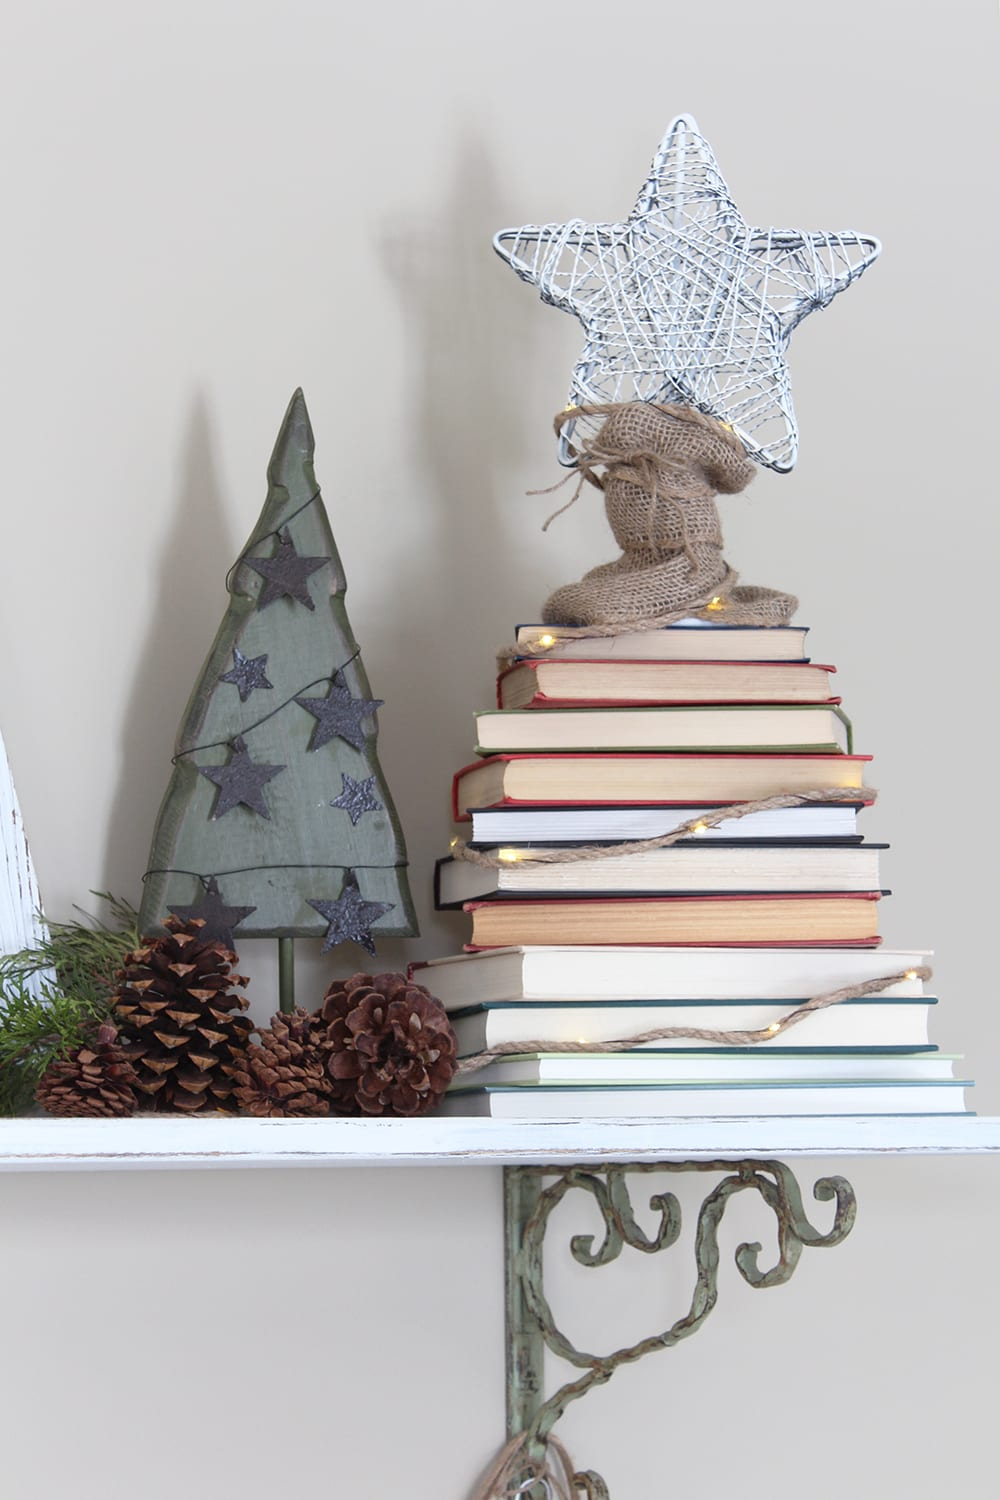 Nature inspired holiday decor alongside a Christmas tree made from a stack of books. For the book nerd in all of us!